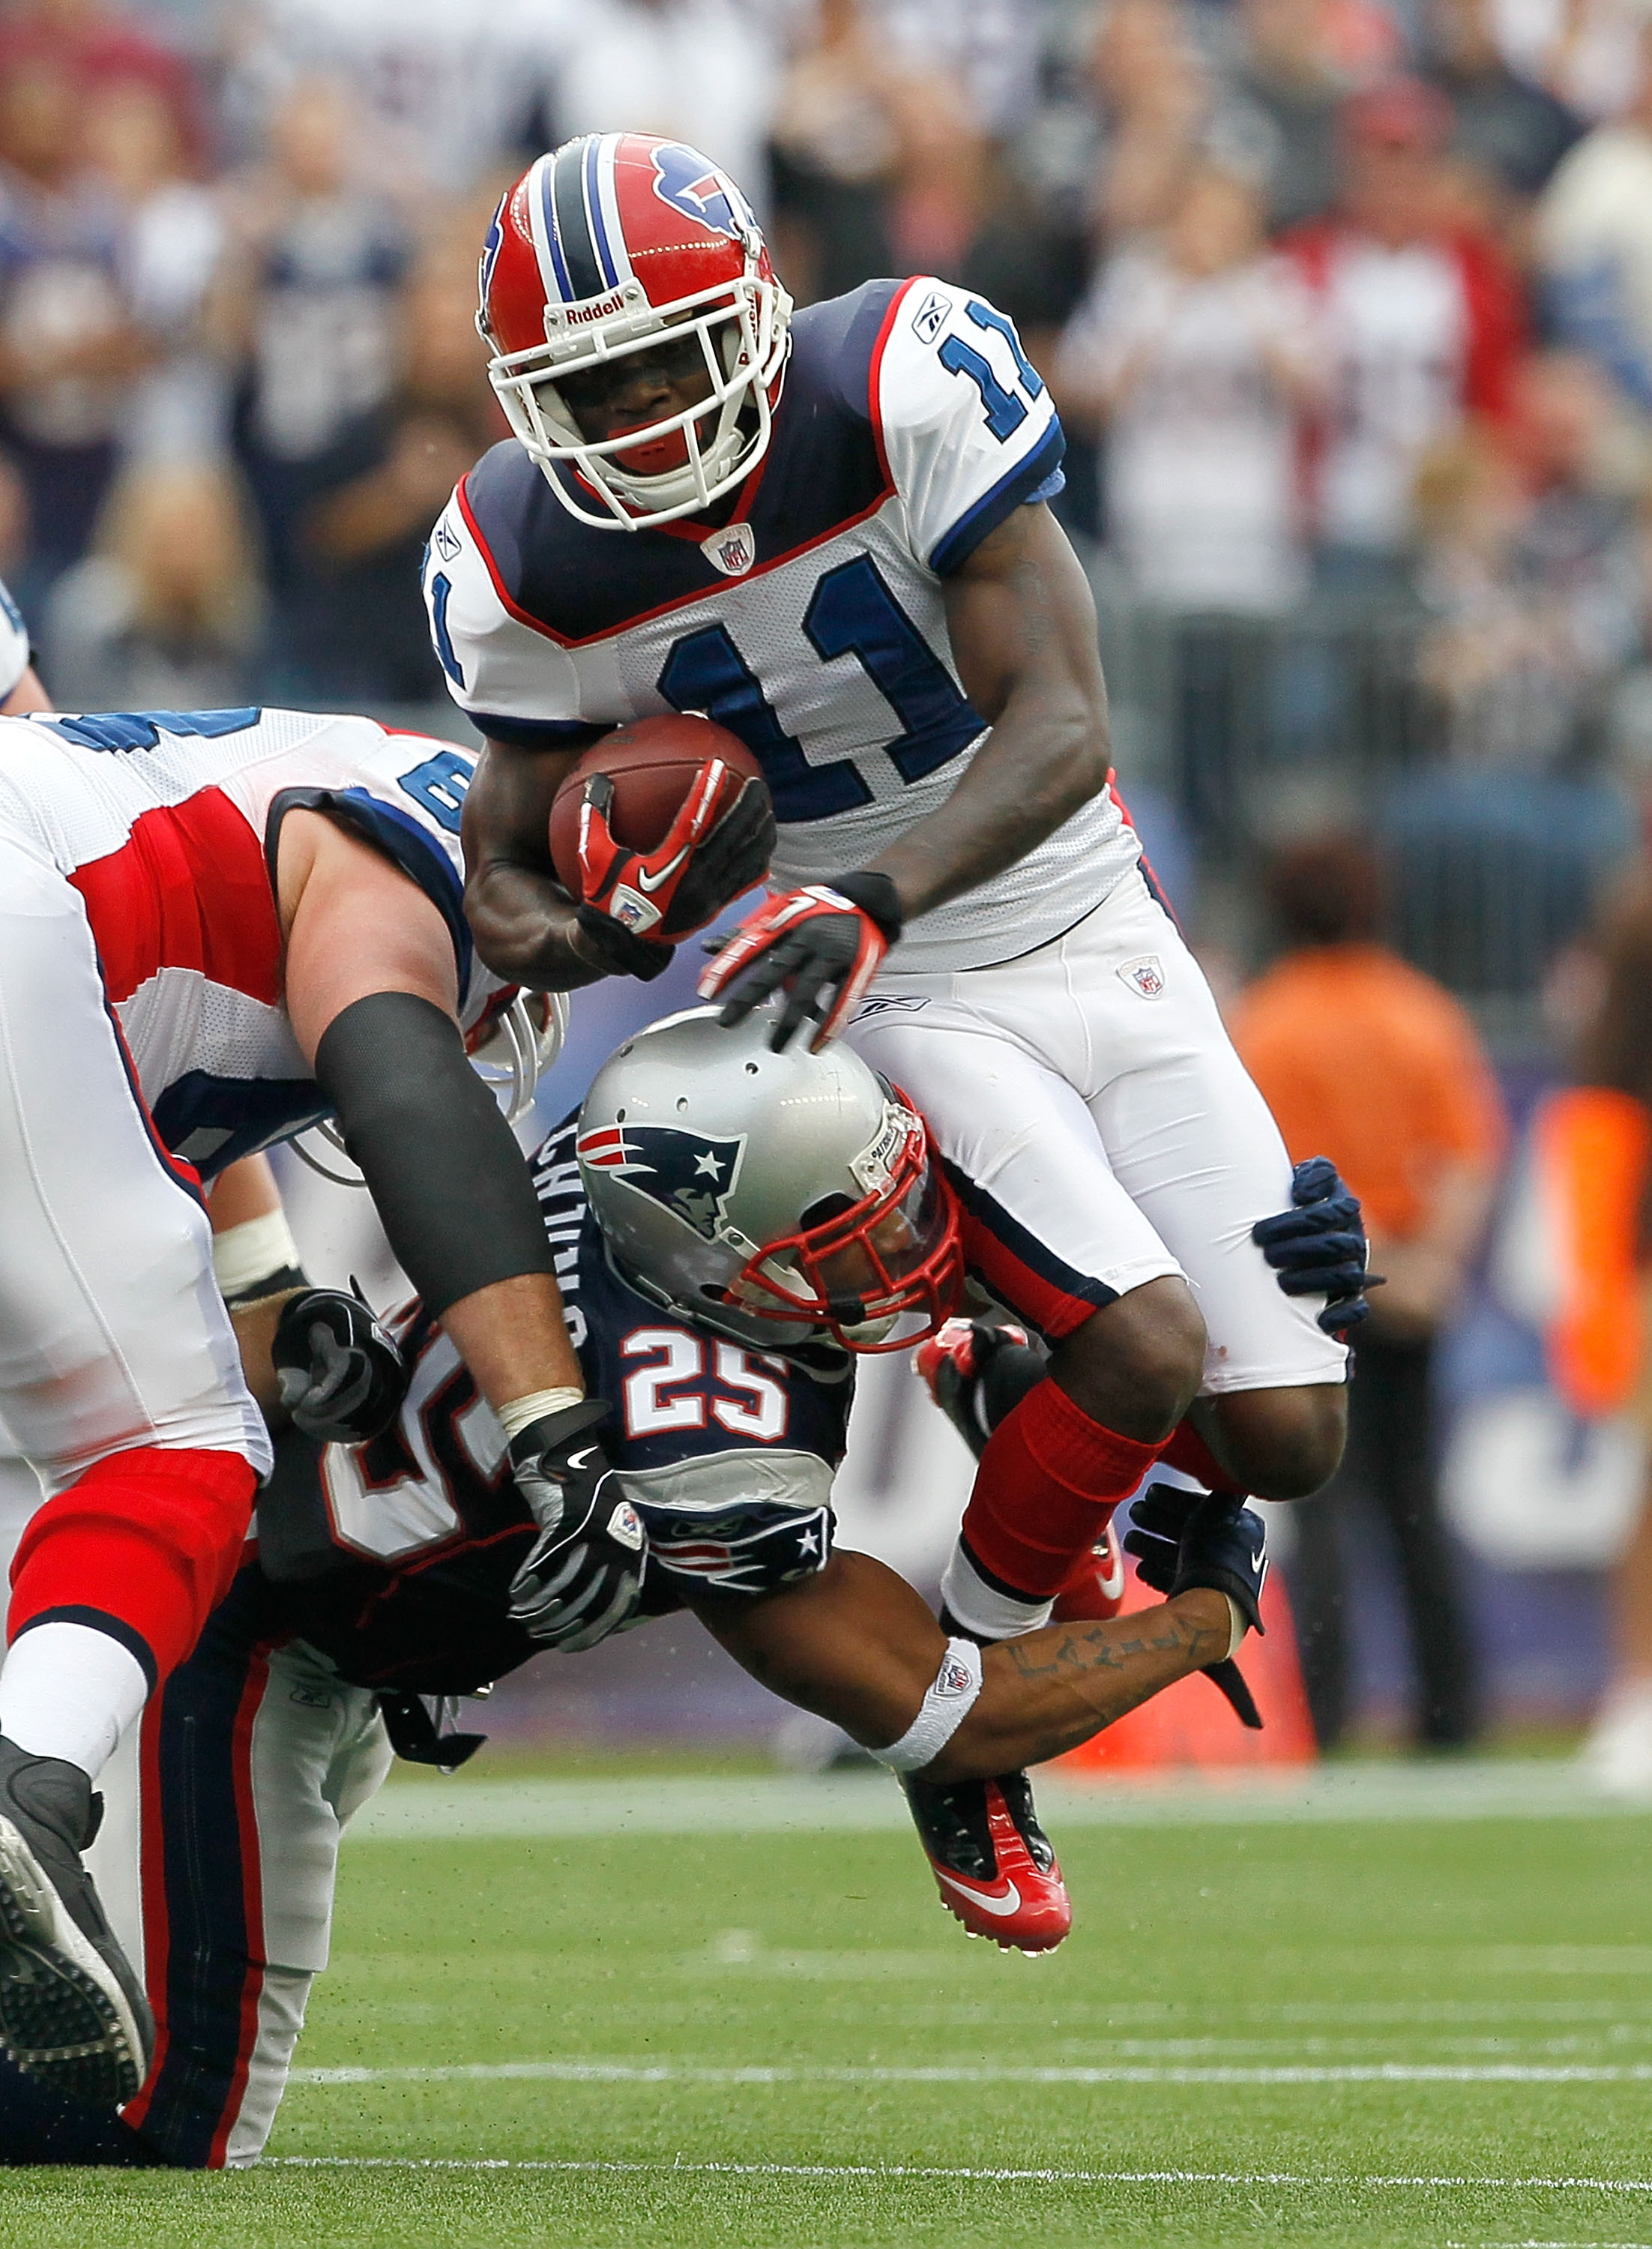 FOXBORO, MA - SEPTEMBER 26:  Patrick Chung #25 of the New England Patriots brings down Roscoe Parrish #11 of the Buffalo Bills in the second half at Gillette Stadium on September 26, 2010 in Foxboro, Massachusetts. (Photo by Jim Rogash/Getty Images)